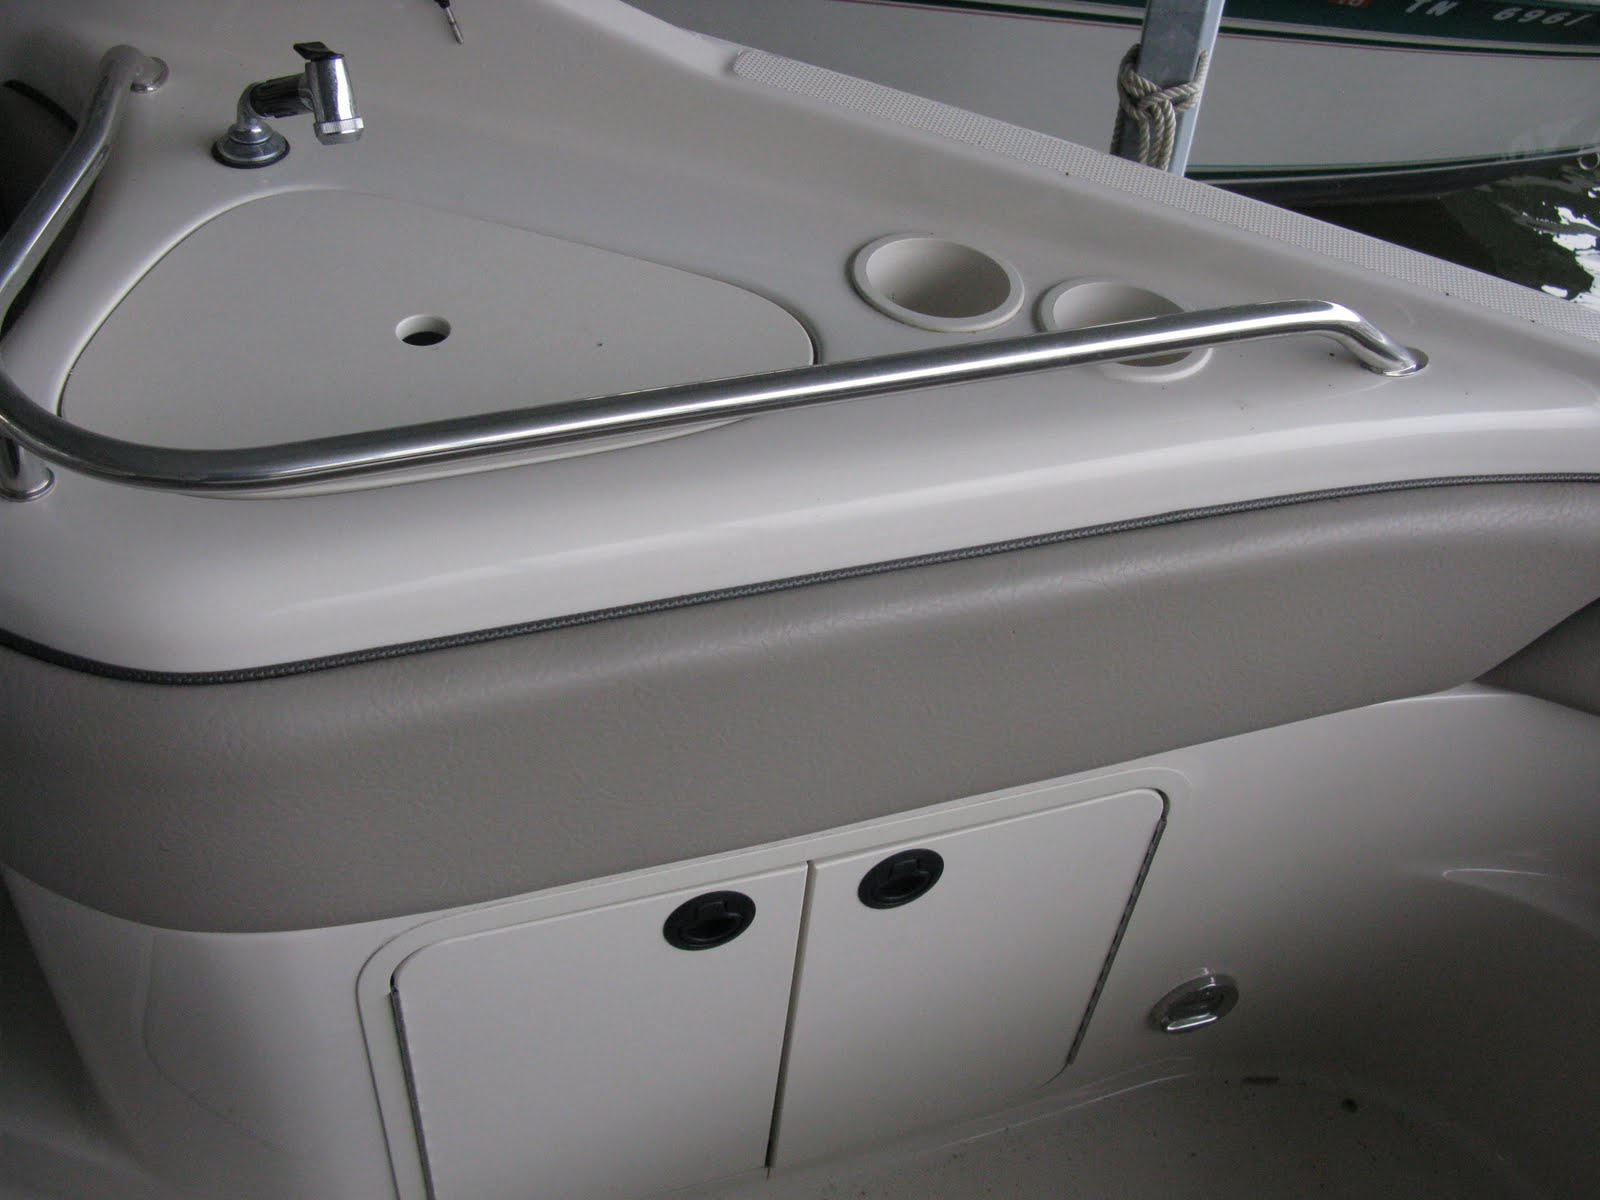 2004 Sea Ray 240 Deckboat Wet Bar With Sink Faucet